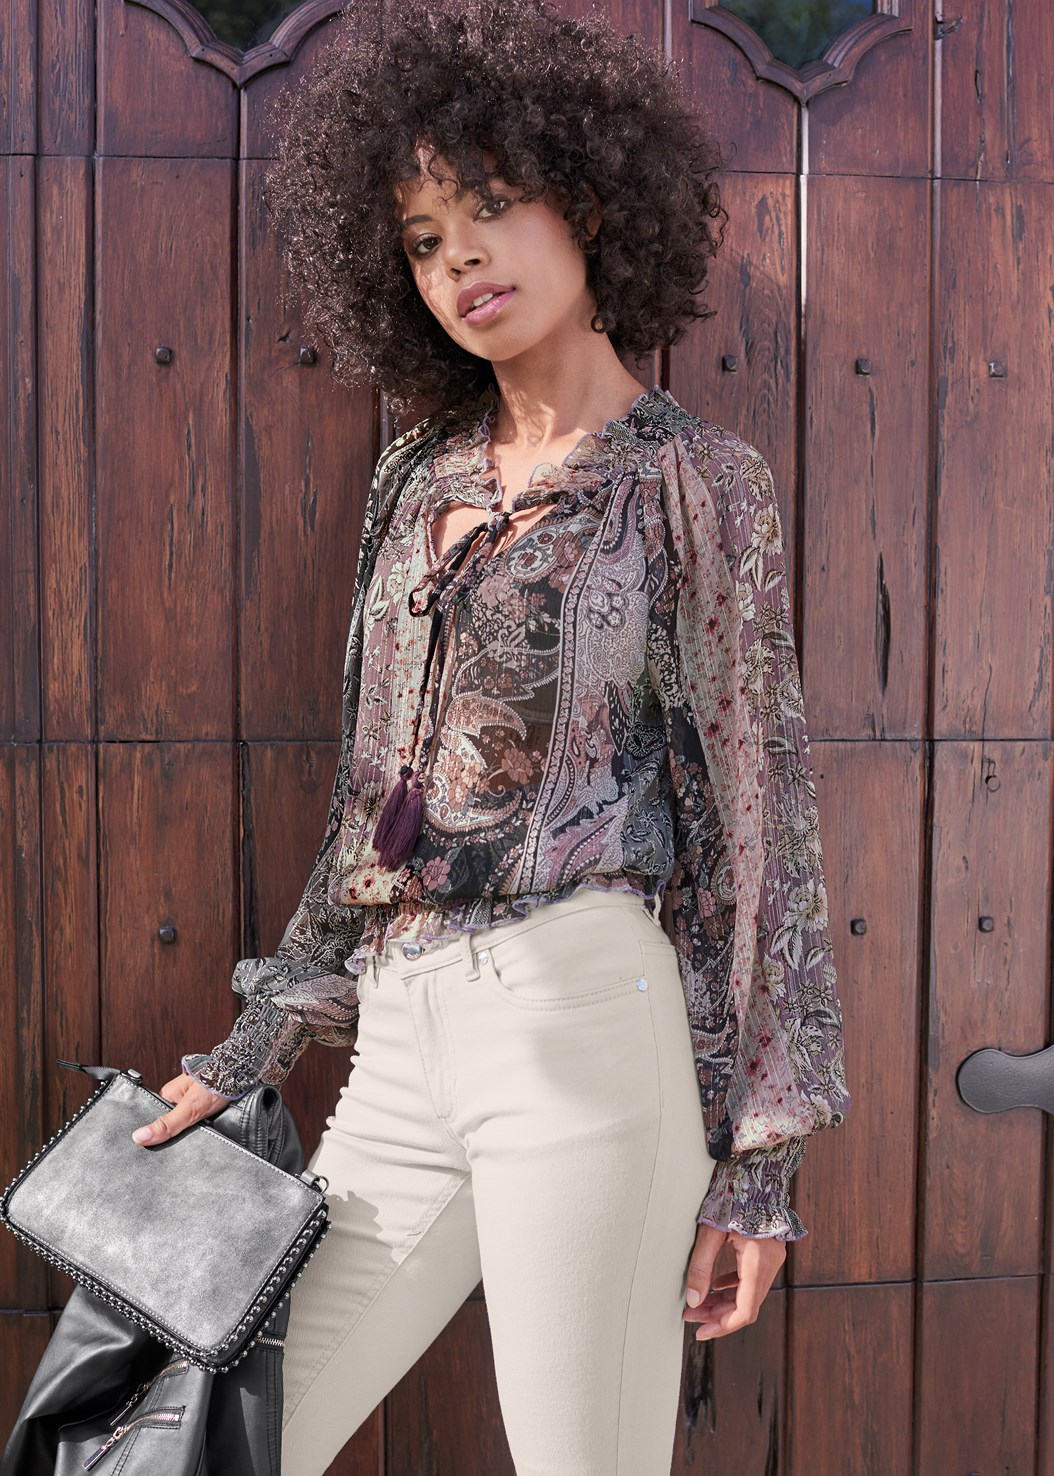 Paisley Print Top,Mid Rise Color Skinny Jeans,Faux Leather Lace Up Jacket,Studded Chain Strap Bag